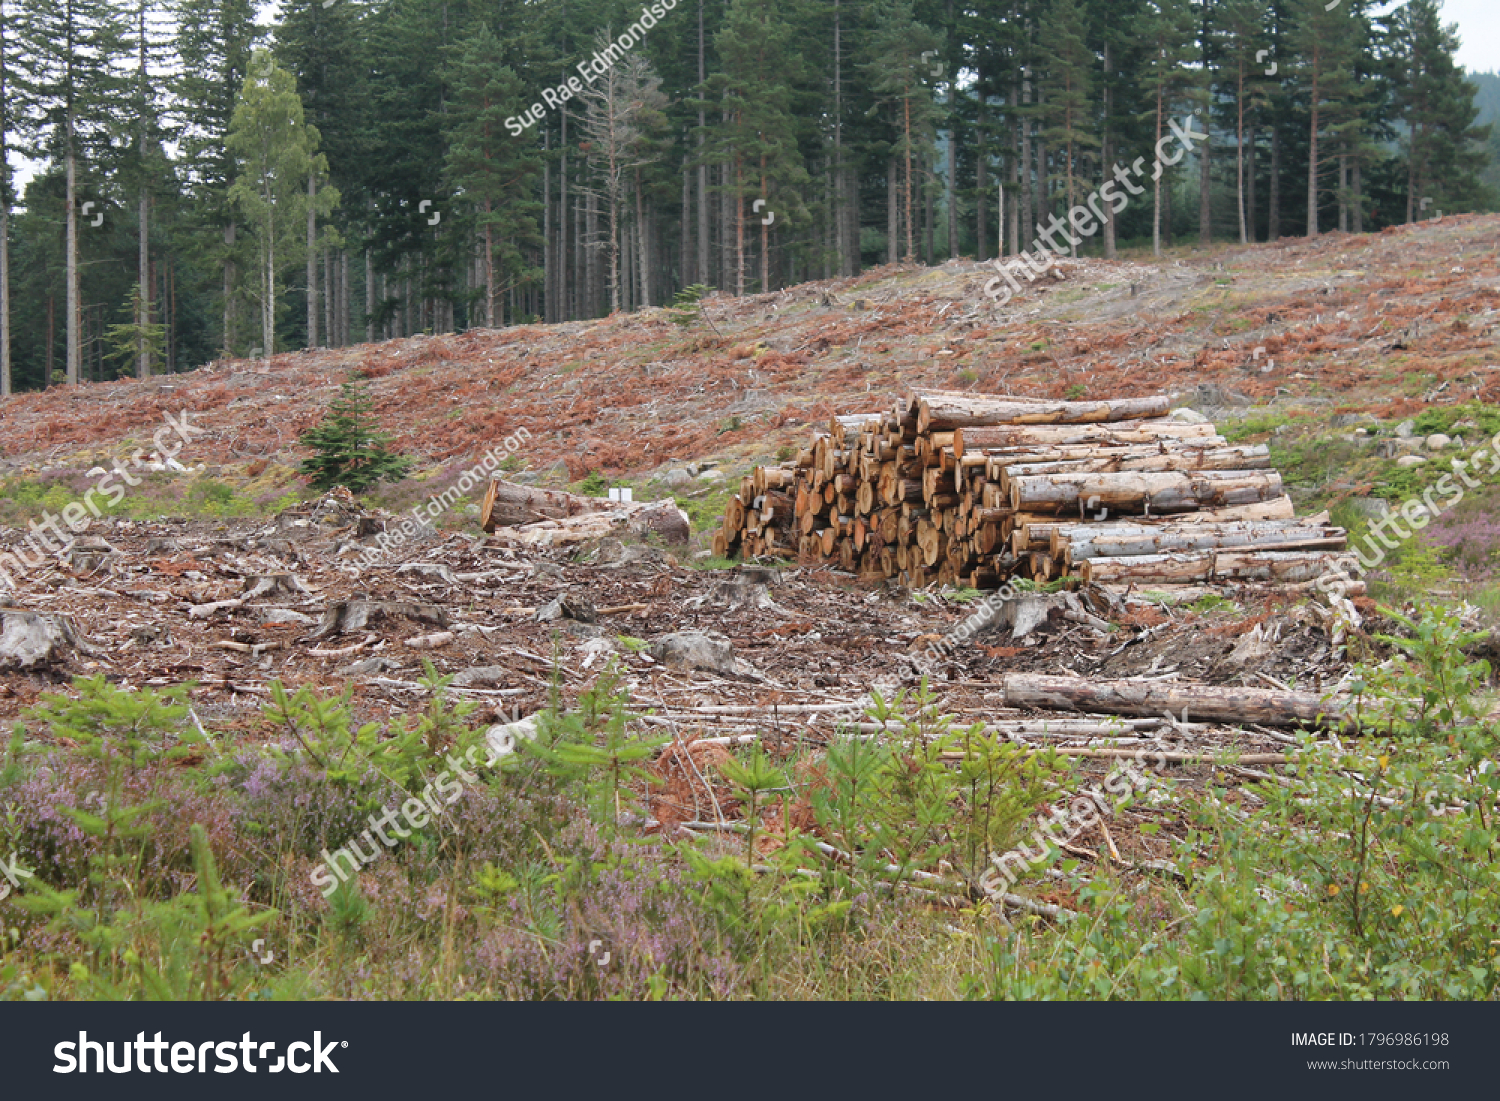 Vivid image of deforestation of Scotland